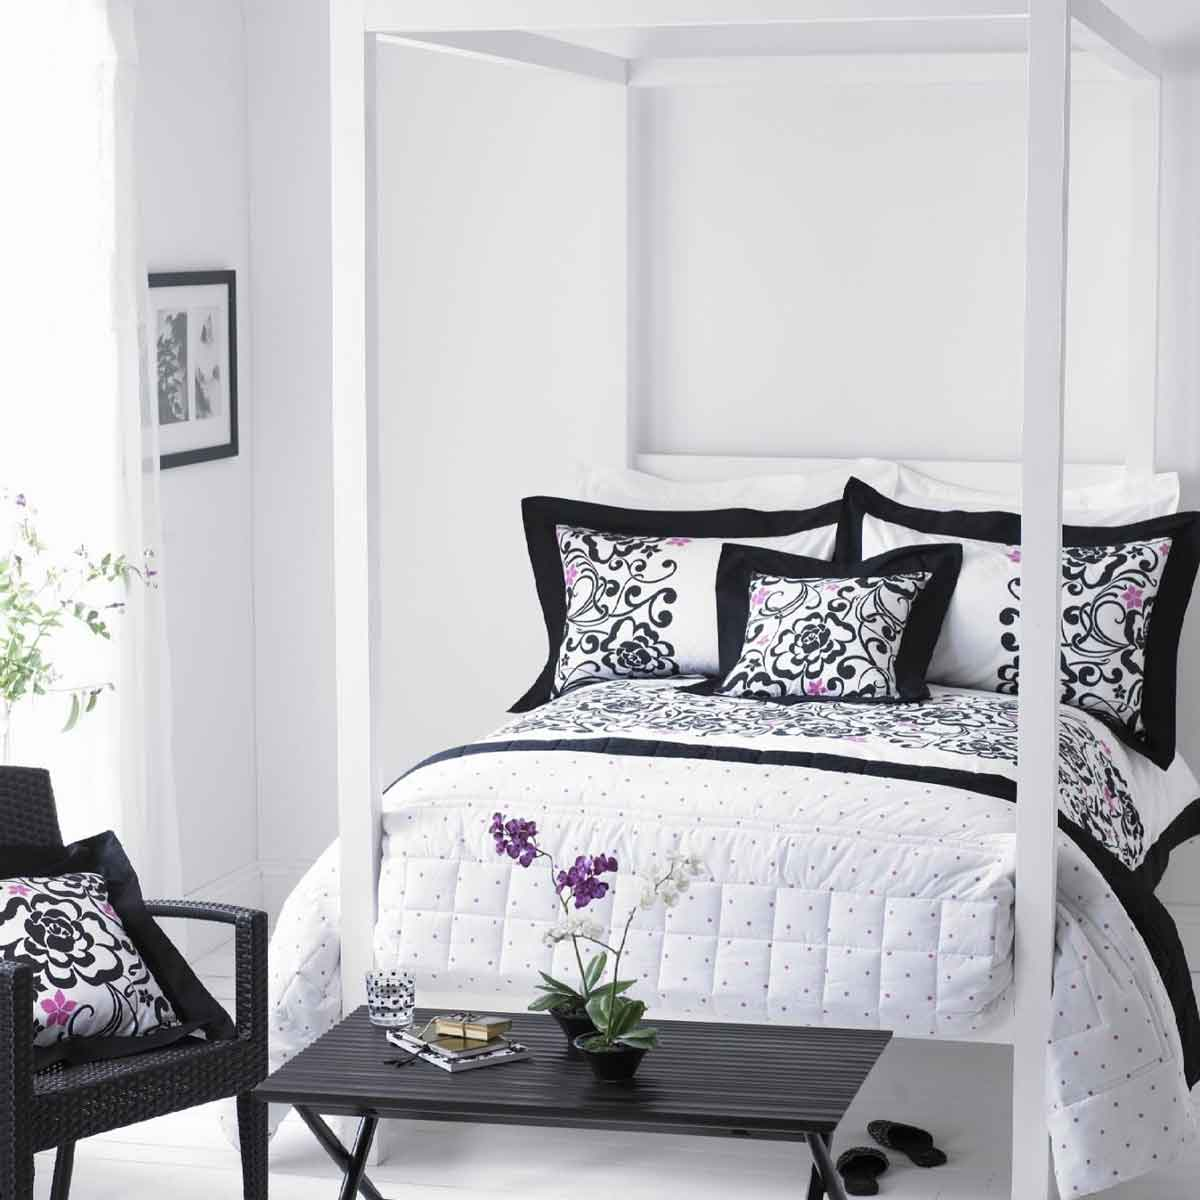 Black White Gray Bedroom Decor